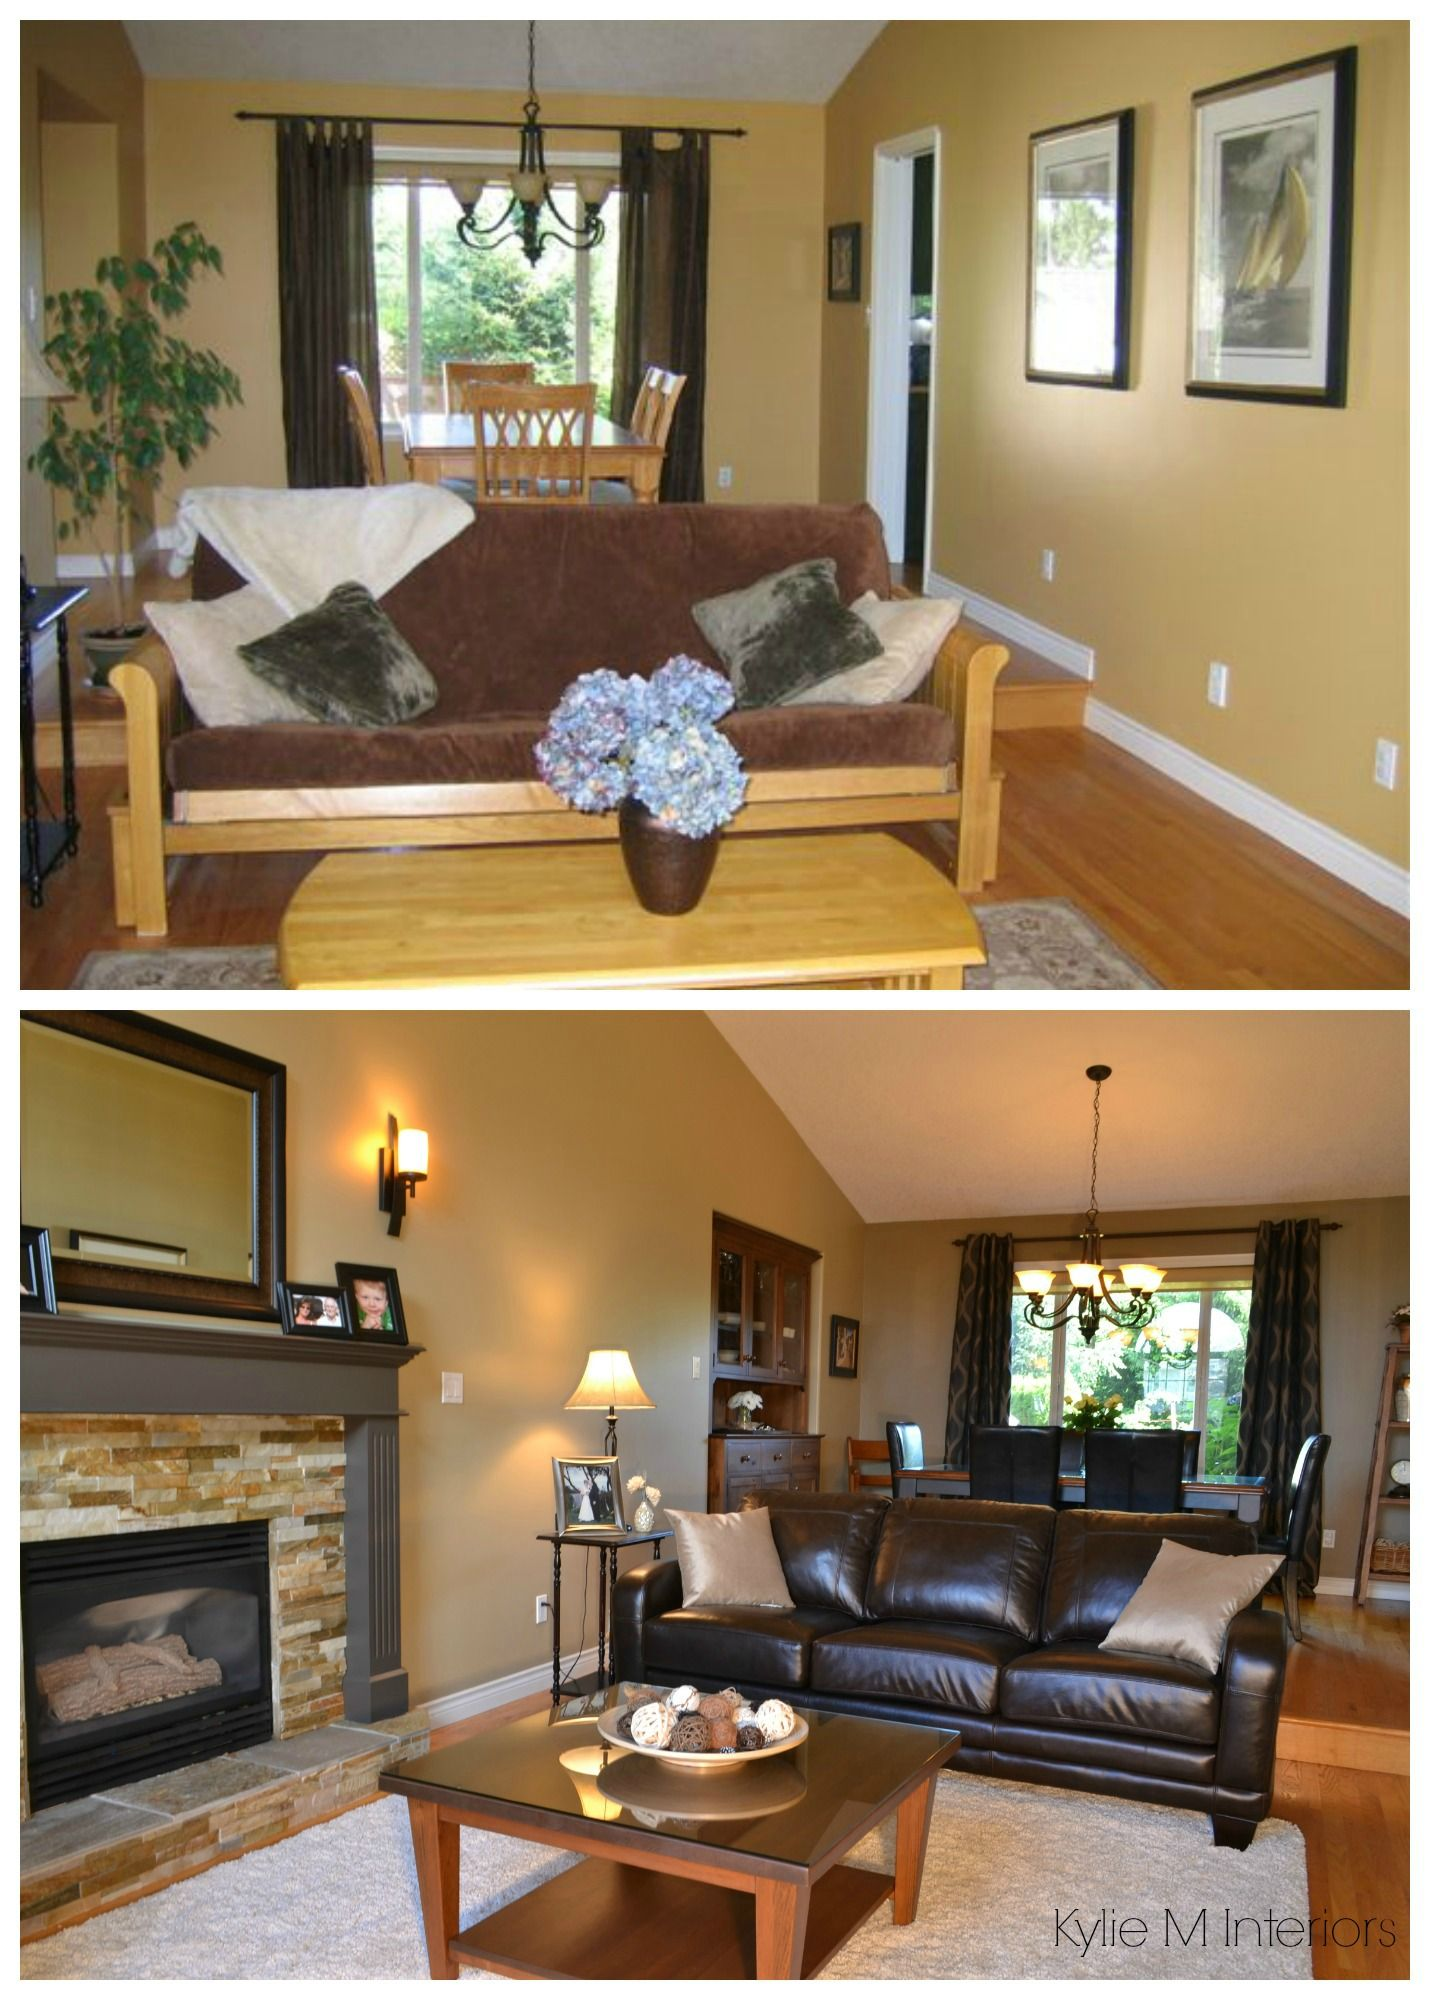 How to lighten a room with low natural light or dark basement room living room before and after with benjamin moore jamesboro gold